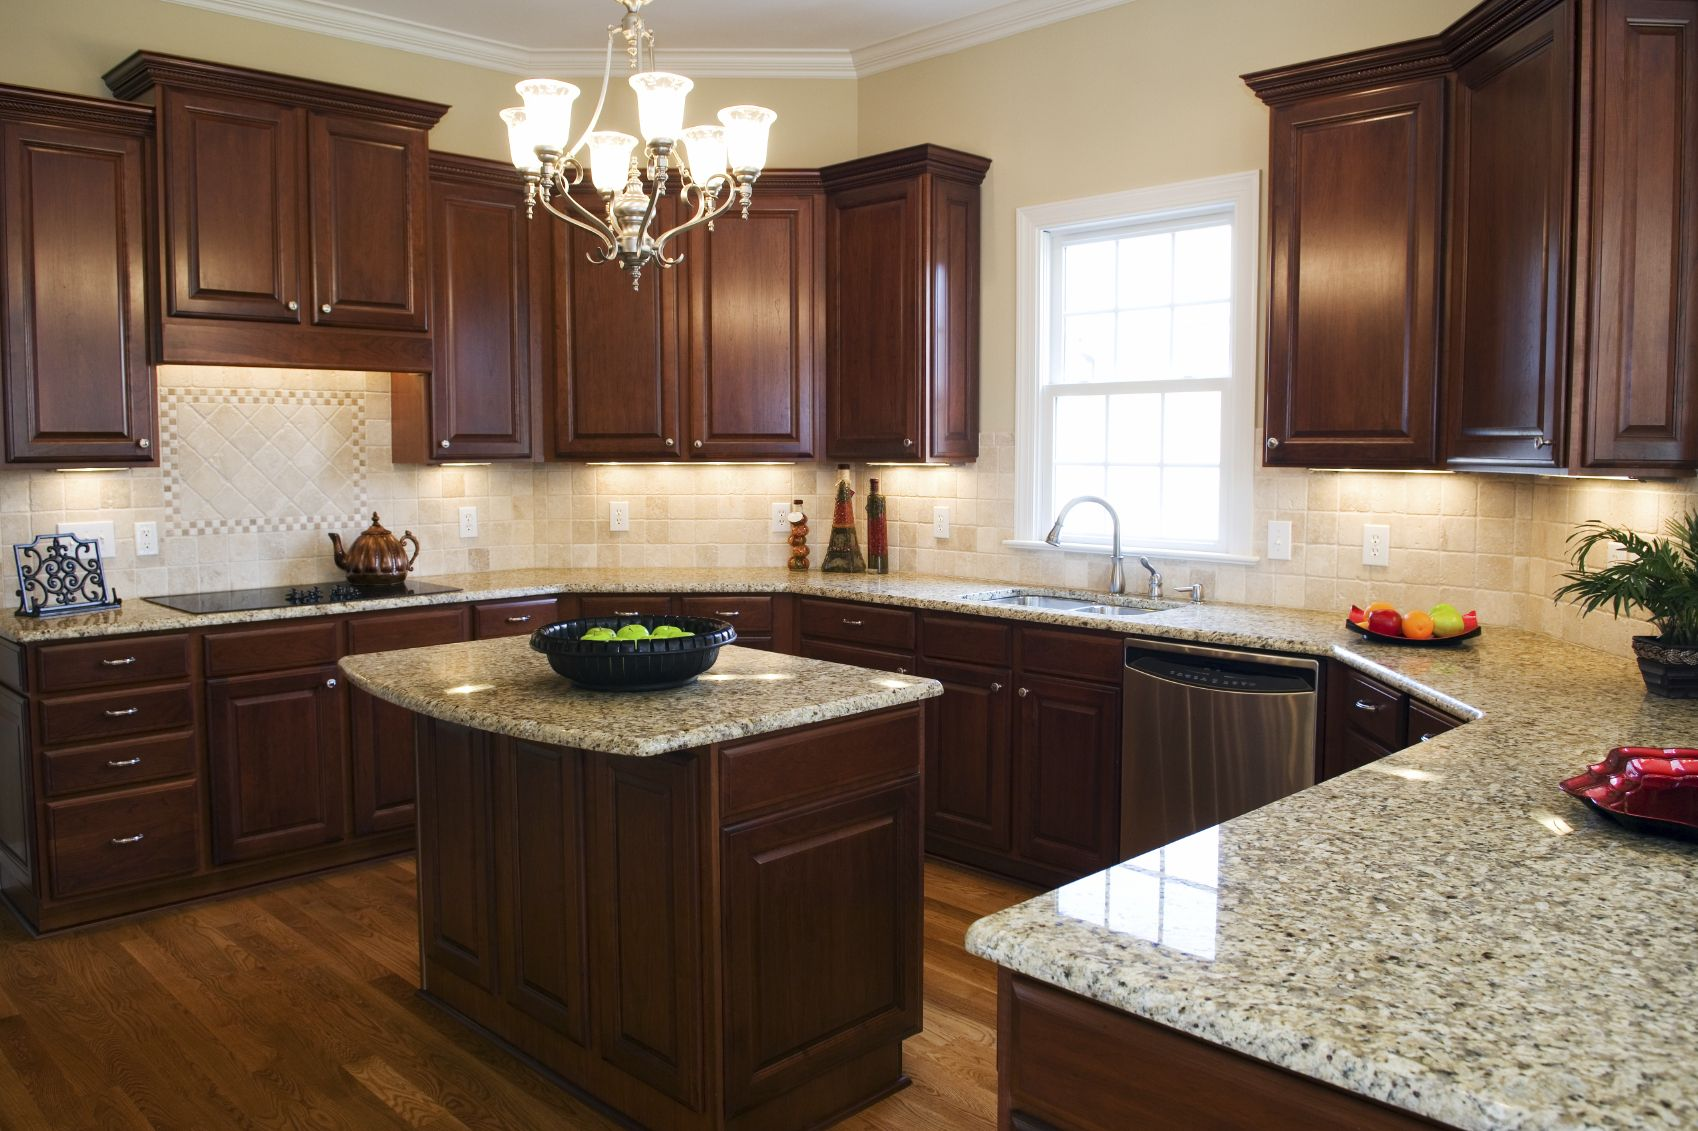 Dark kitchen cabinets - love the granite counter top and light ...